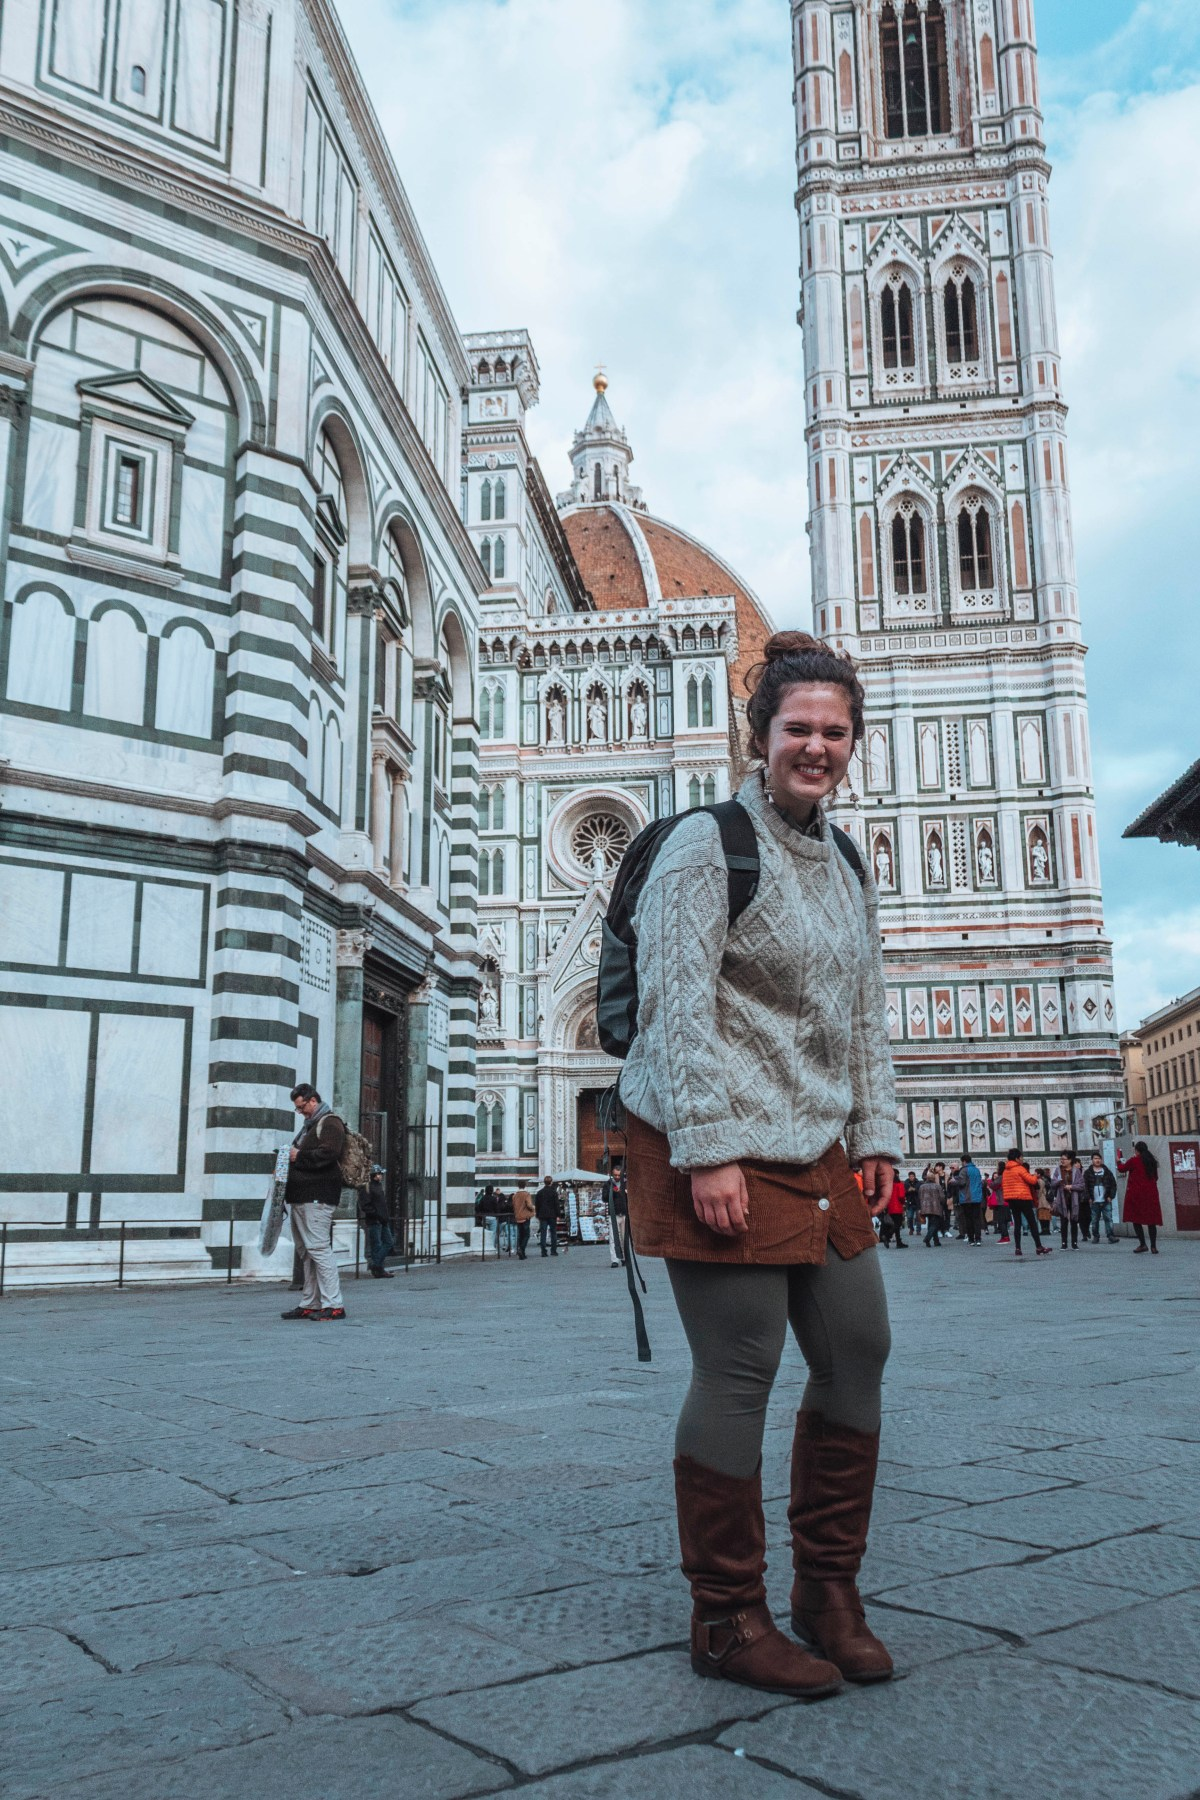 Italy guide to Florence- Cathedral of Santa Maria del Fiore (Duomo)